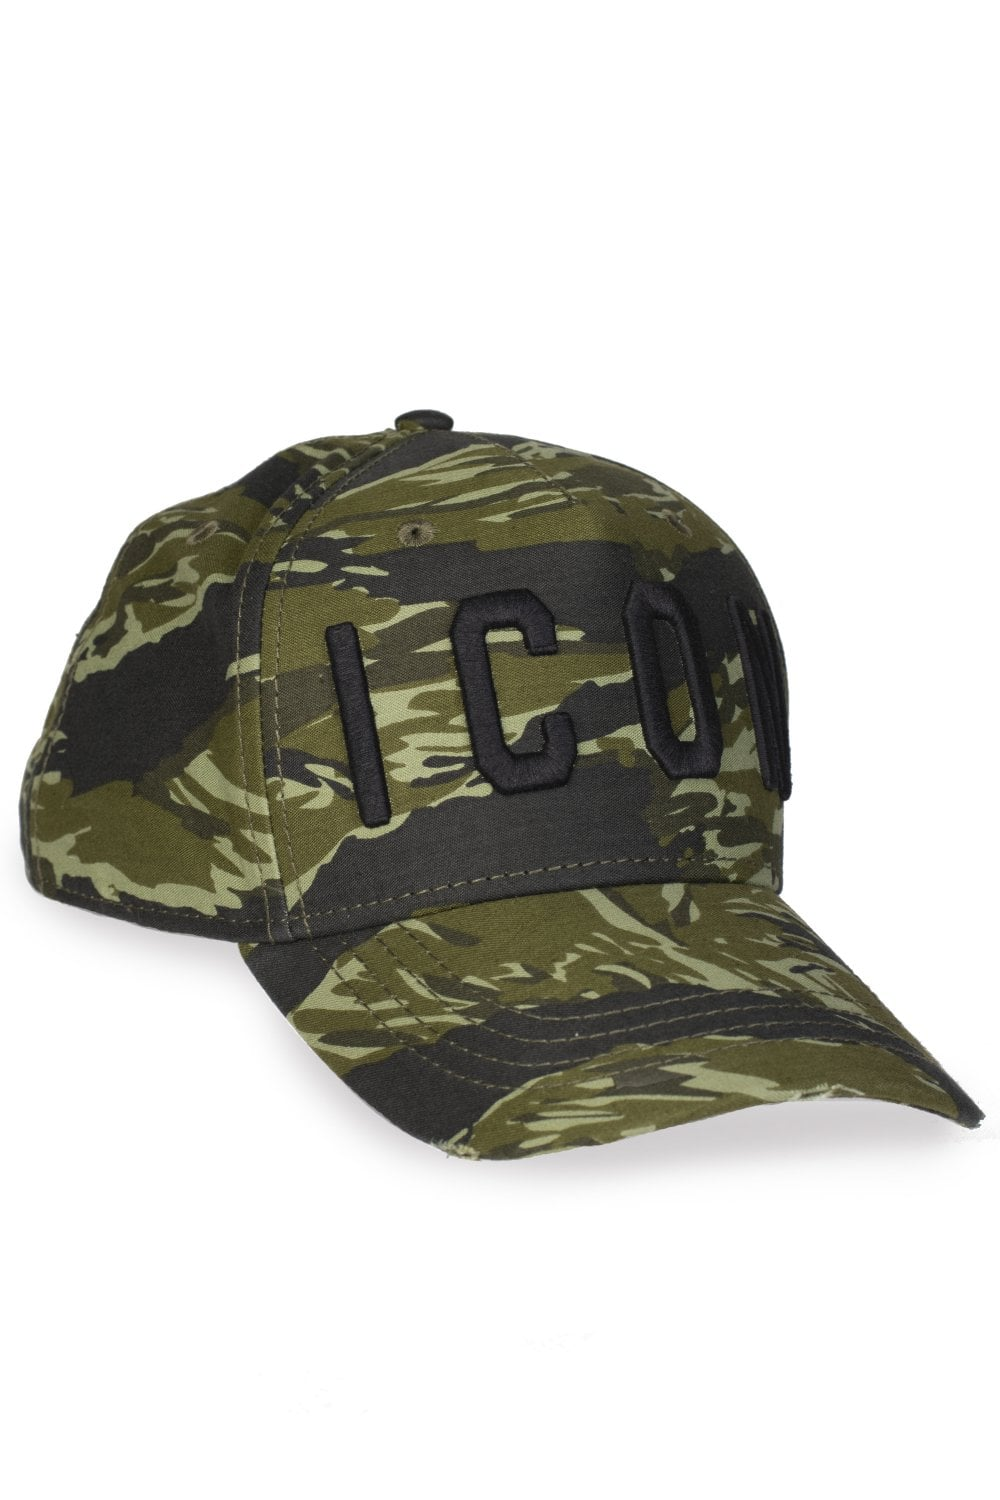 035f74ecdcf DSQUARED2 Dsquared2 Icon Camouflage Baseball Cap - Clothing from ...